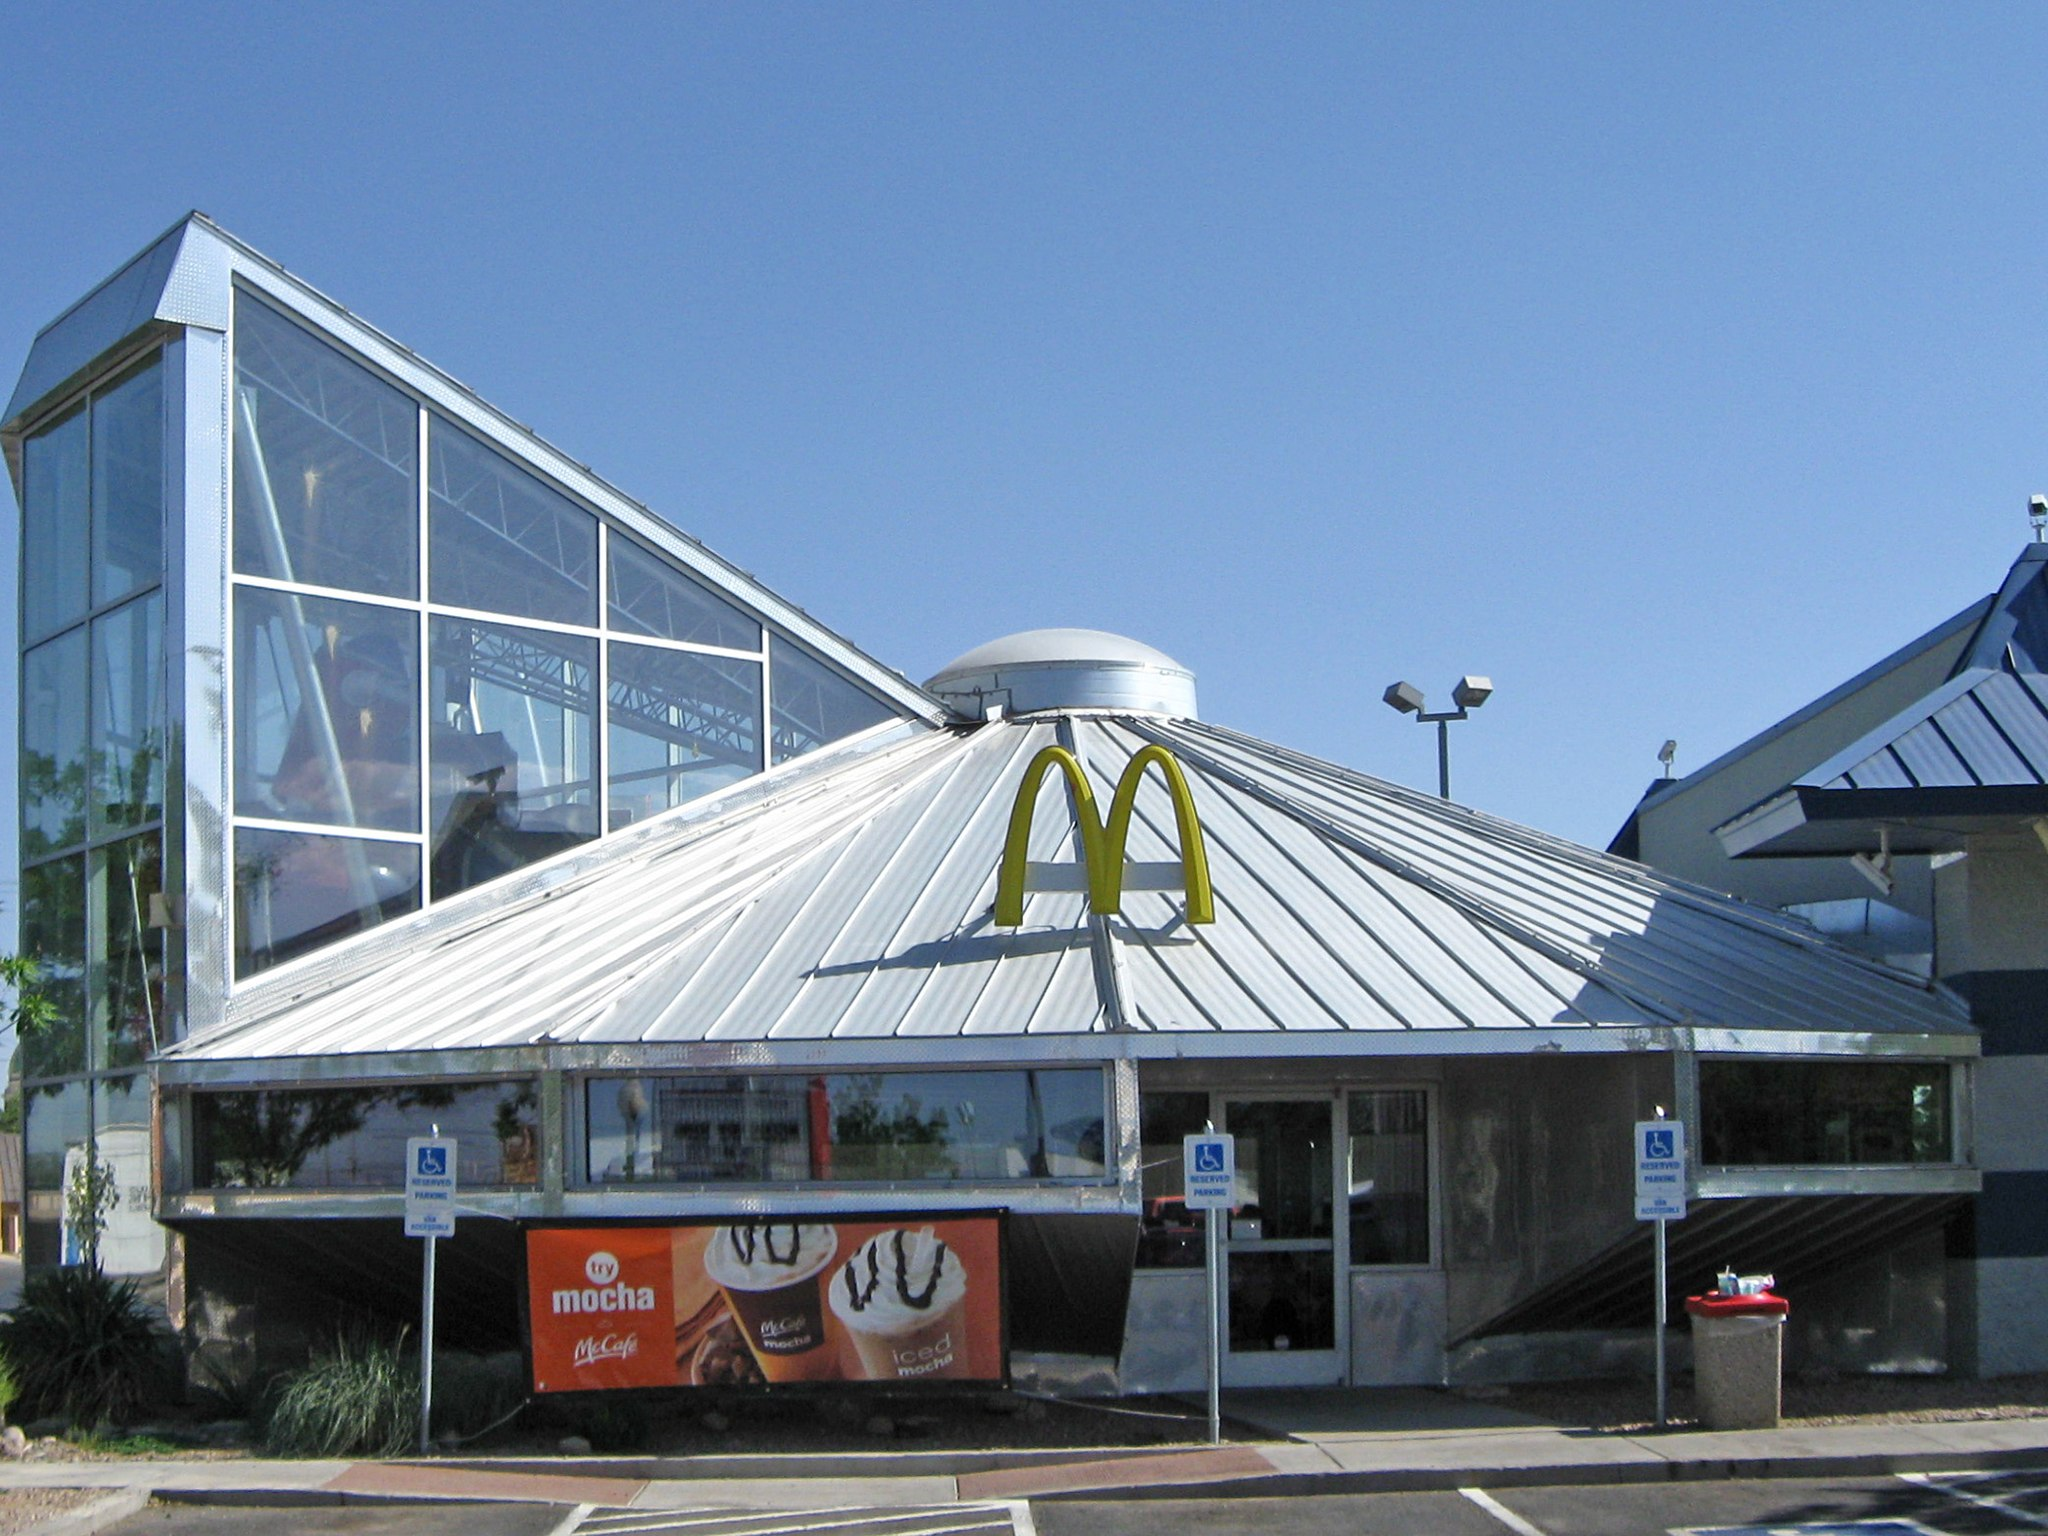 spaceship McDonald's outlet